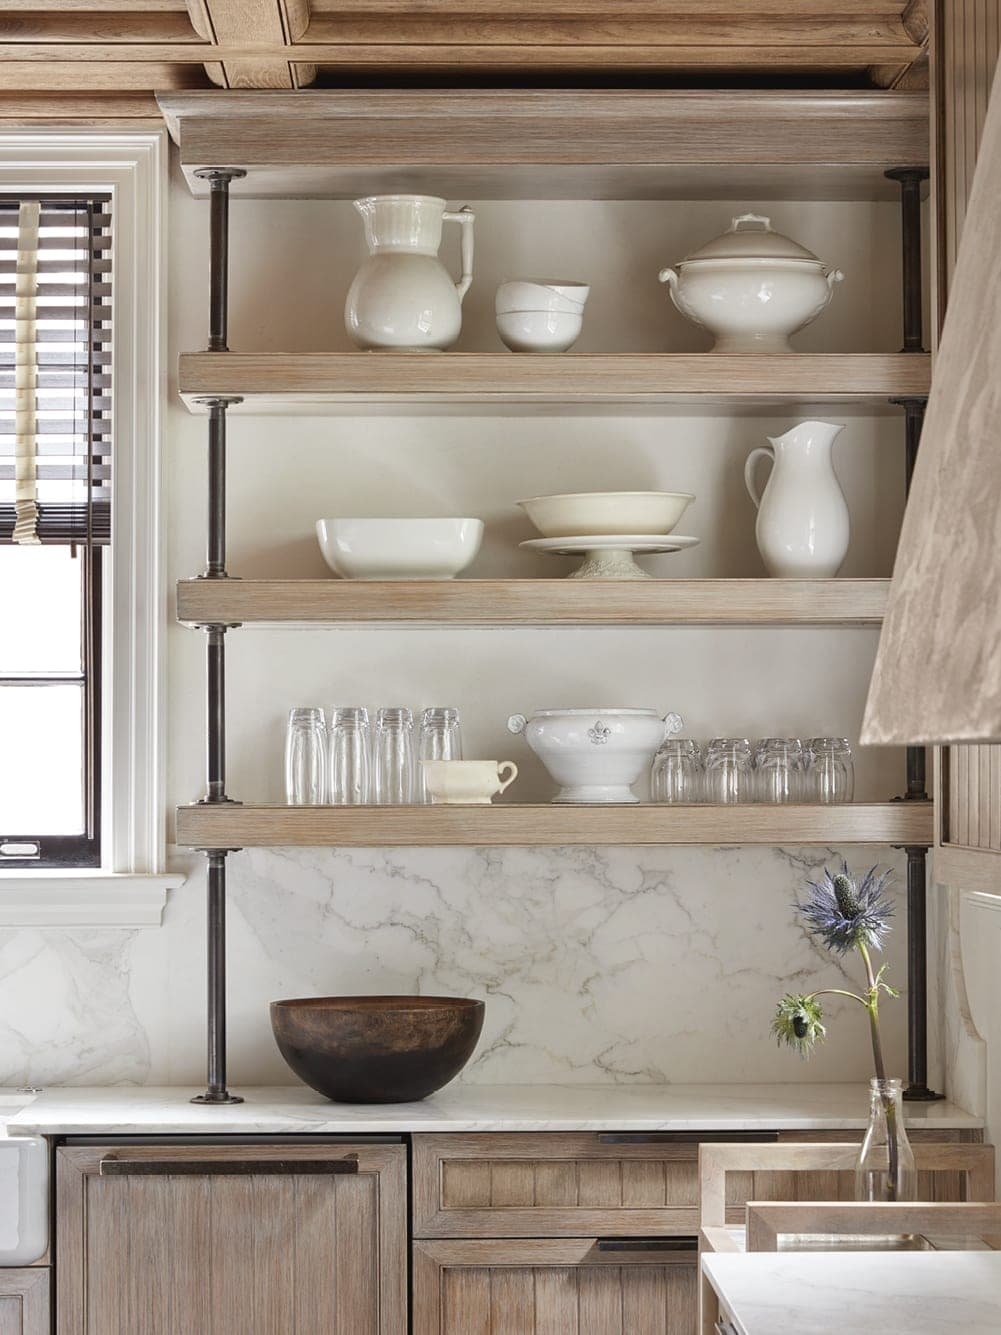 Kitchen shelves lined with white dishes